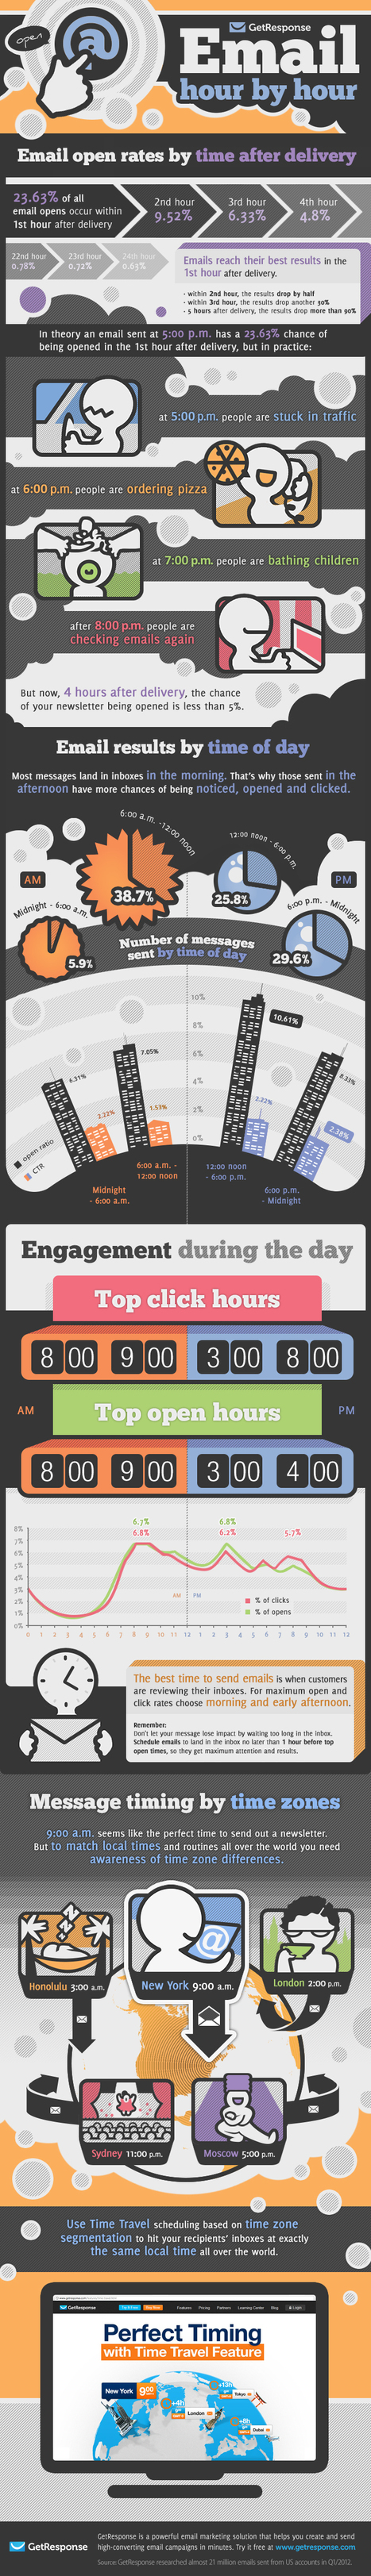 Infographic: Email open rates by time of day | MarketingSherpa Blog | Social media marketing | Scoop.it